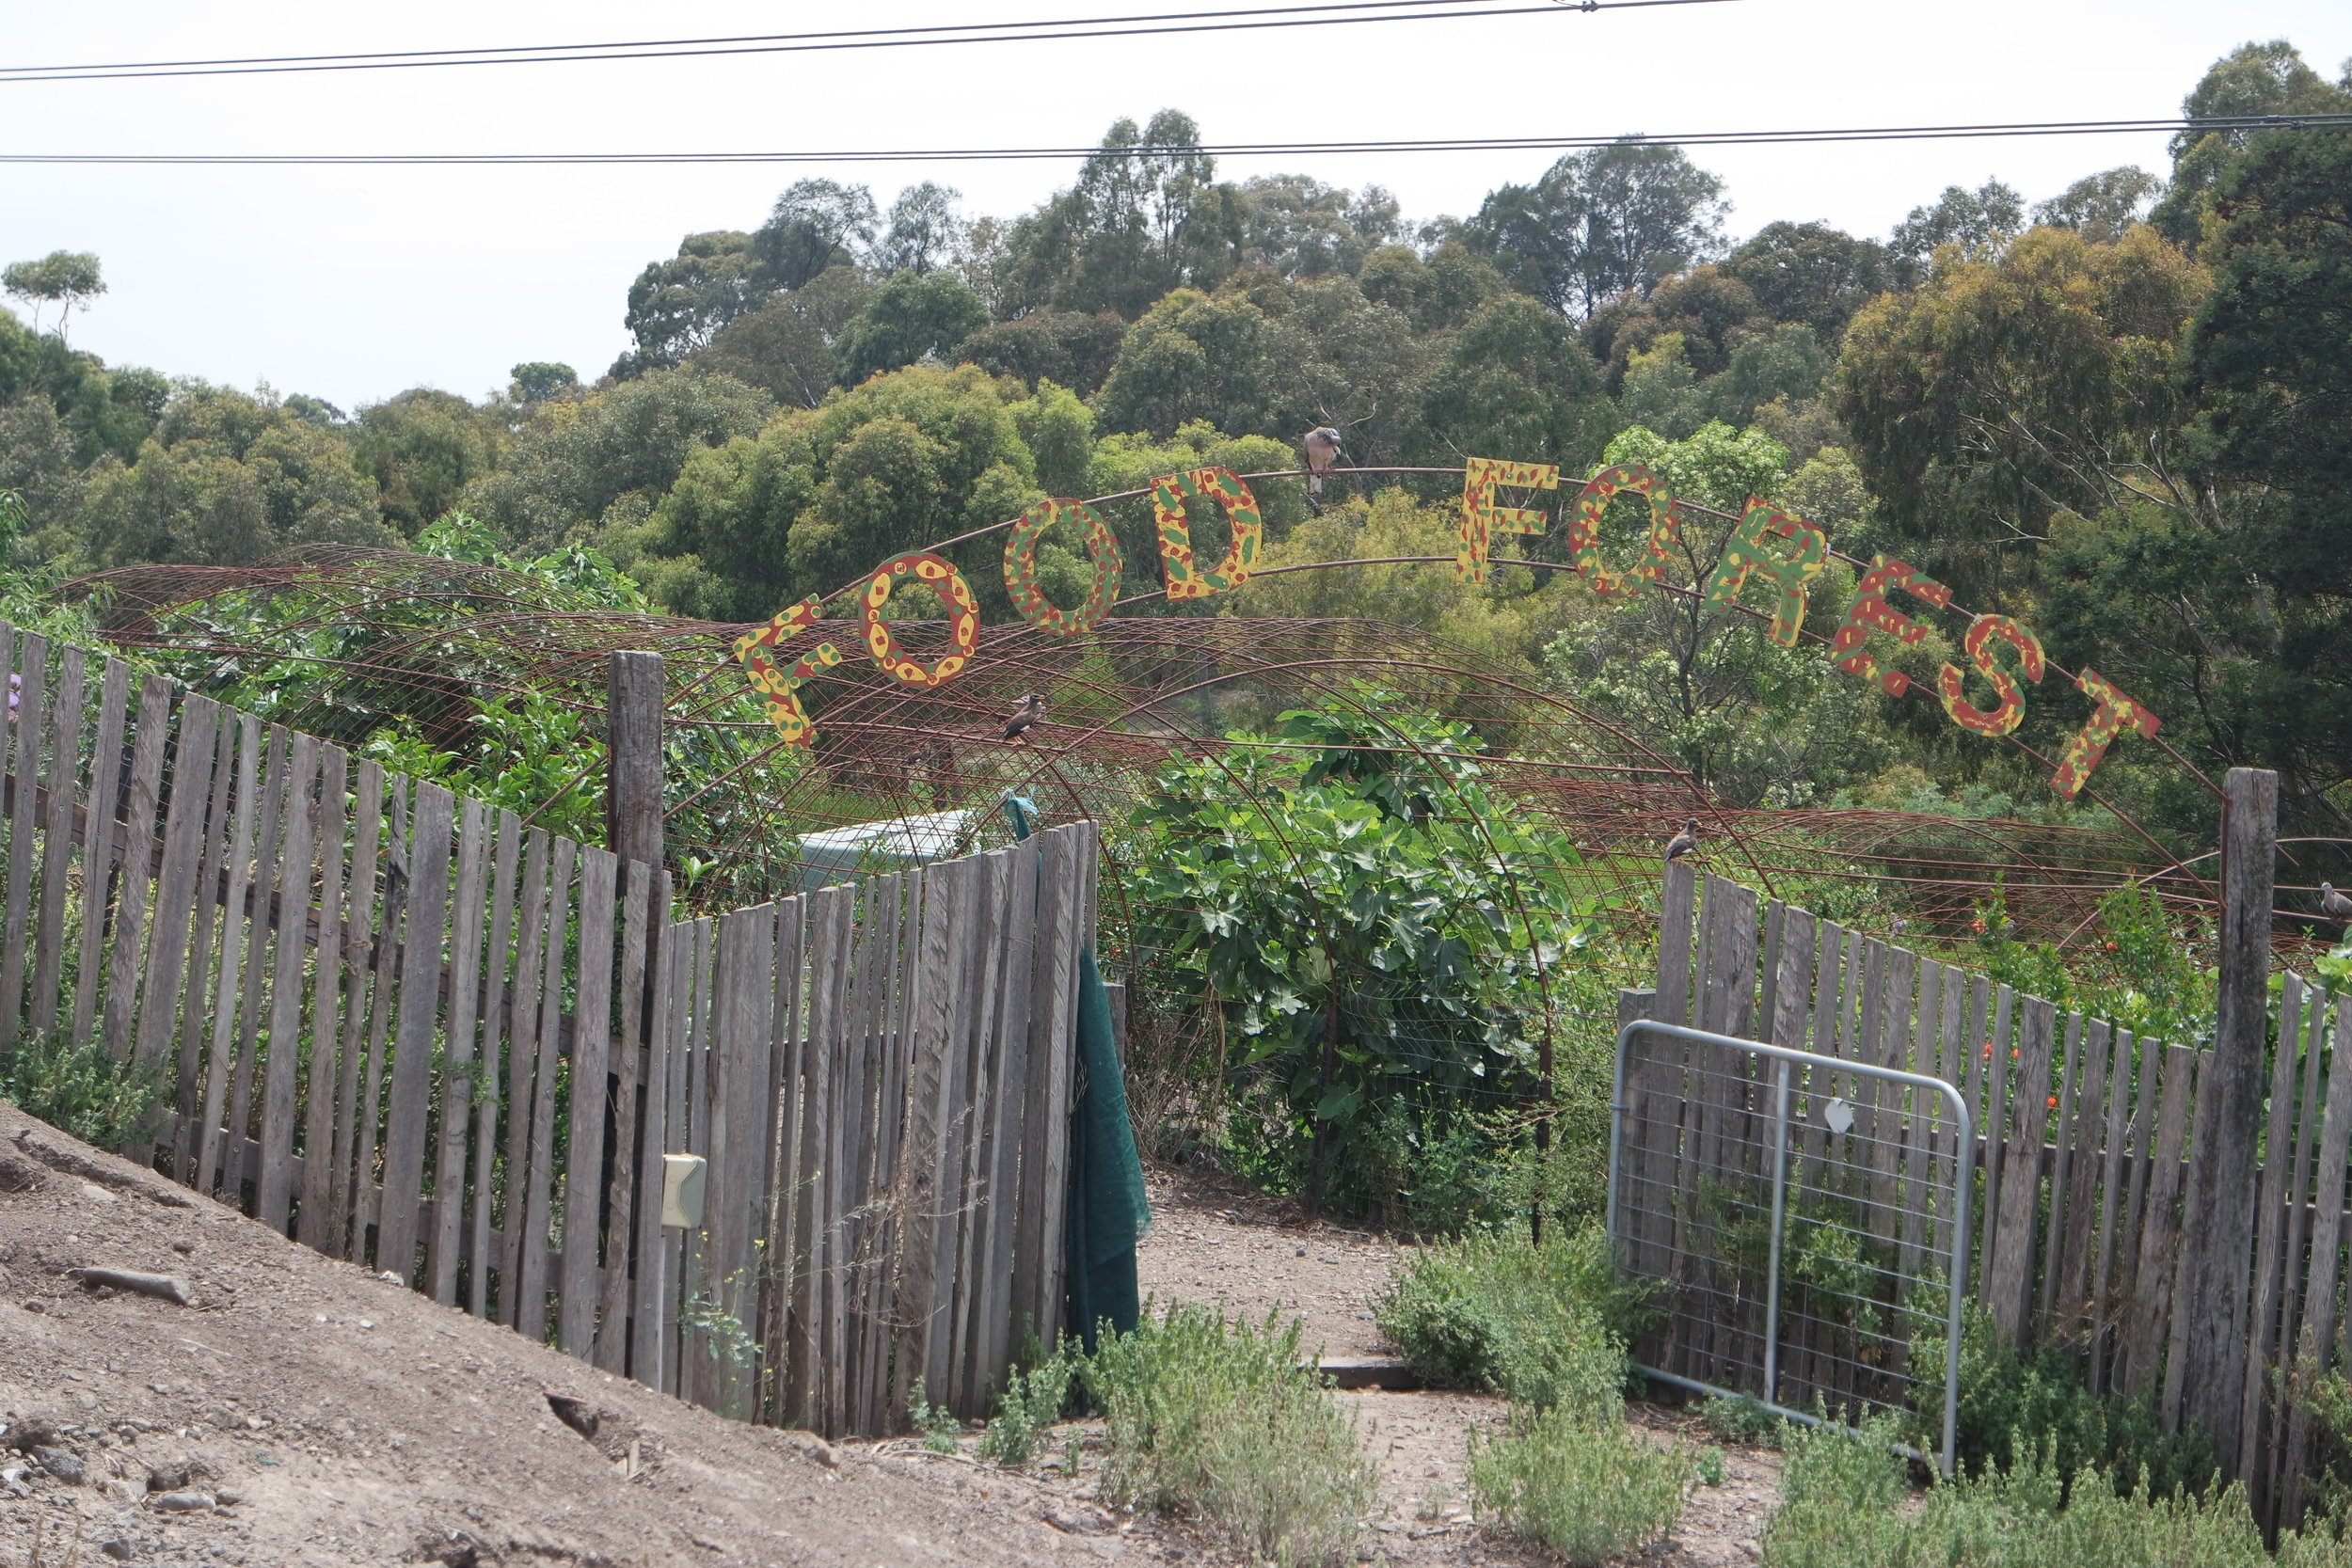 Restoration of nature can go hand in hand with food production in a permaculture food forest.